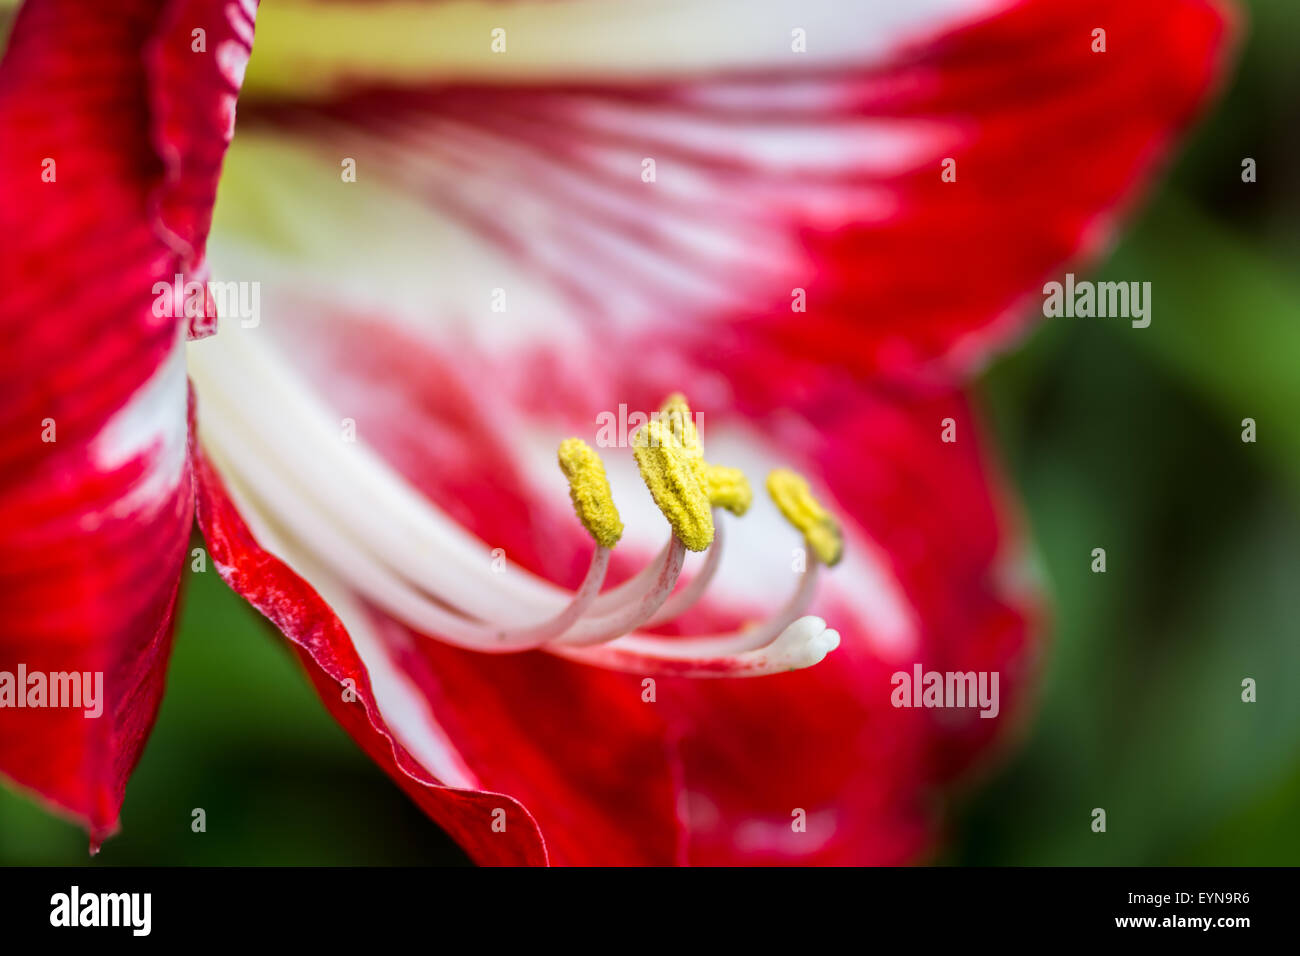 Vibrant Red blooming wildflower of Himalayan mountain, close up of petals, stamen and anther with copy space - Stock Image